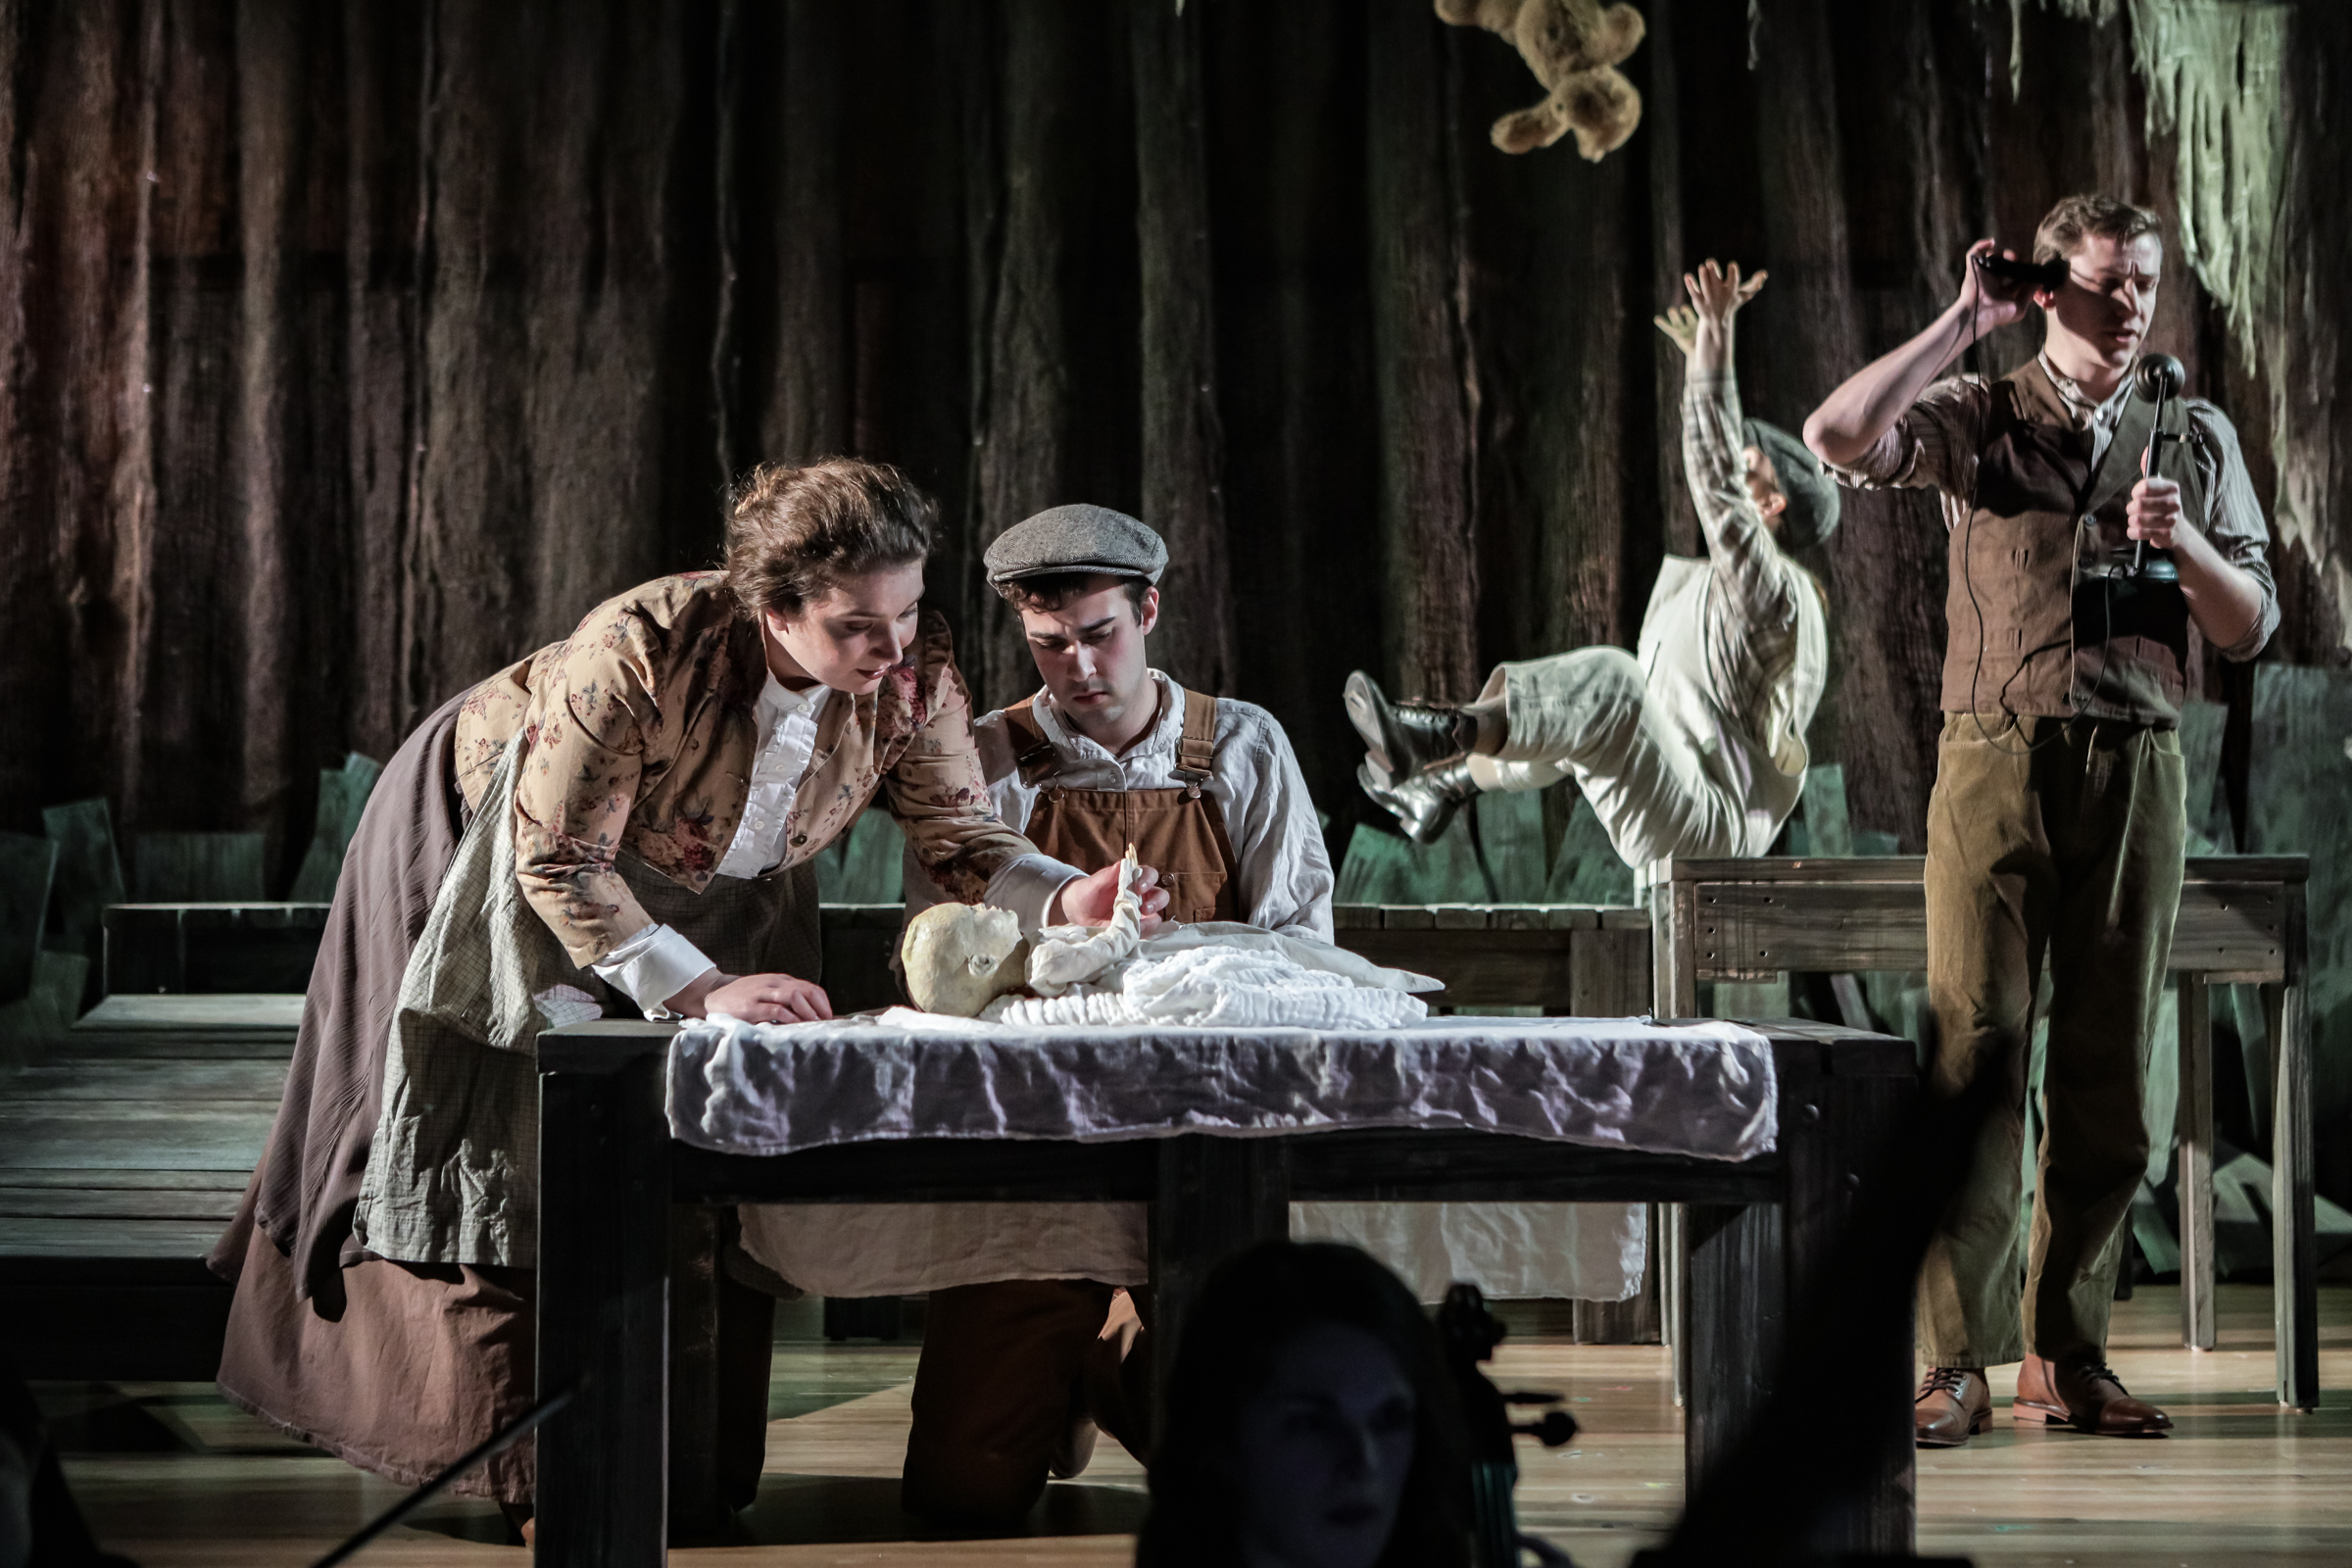 Ann Fogler as Brother, Emily Harmon as Auntie, Scott Ballantine as Father, and Lucas Coura as Doodle in  The Scarlet Ibis .  Boston Opera Collaborative; January 2019.  Photo Credit: Dan Busler